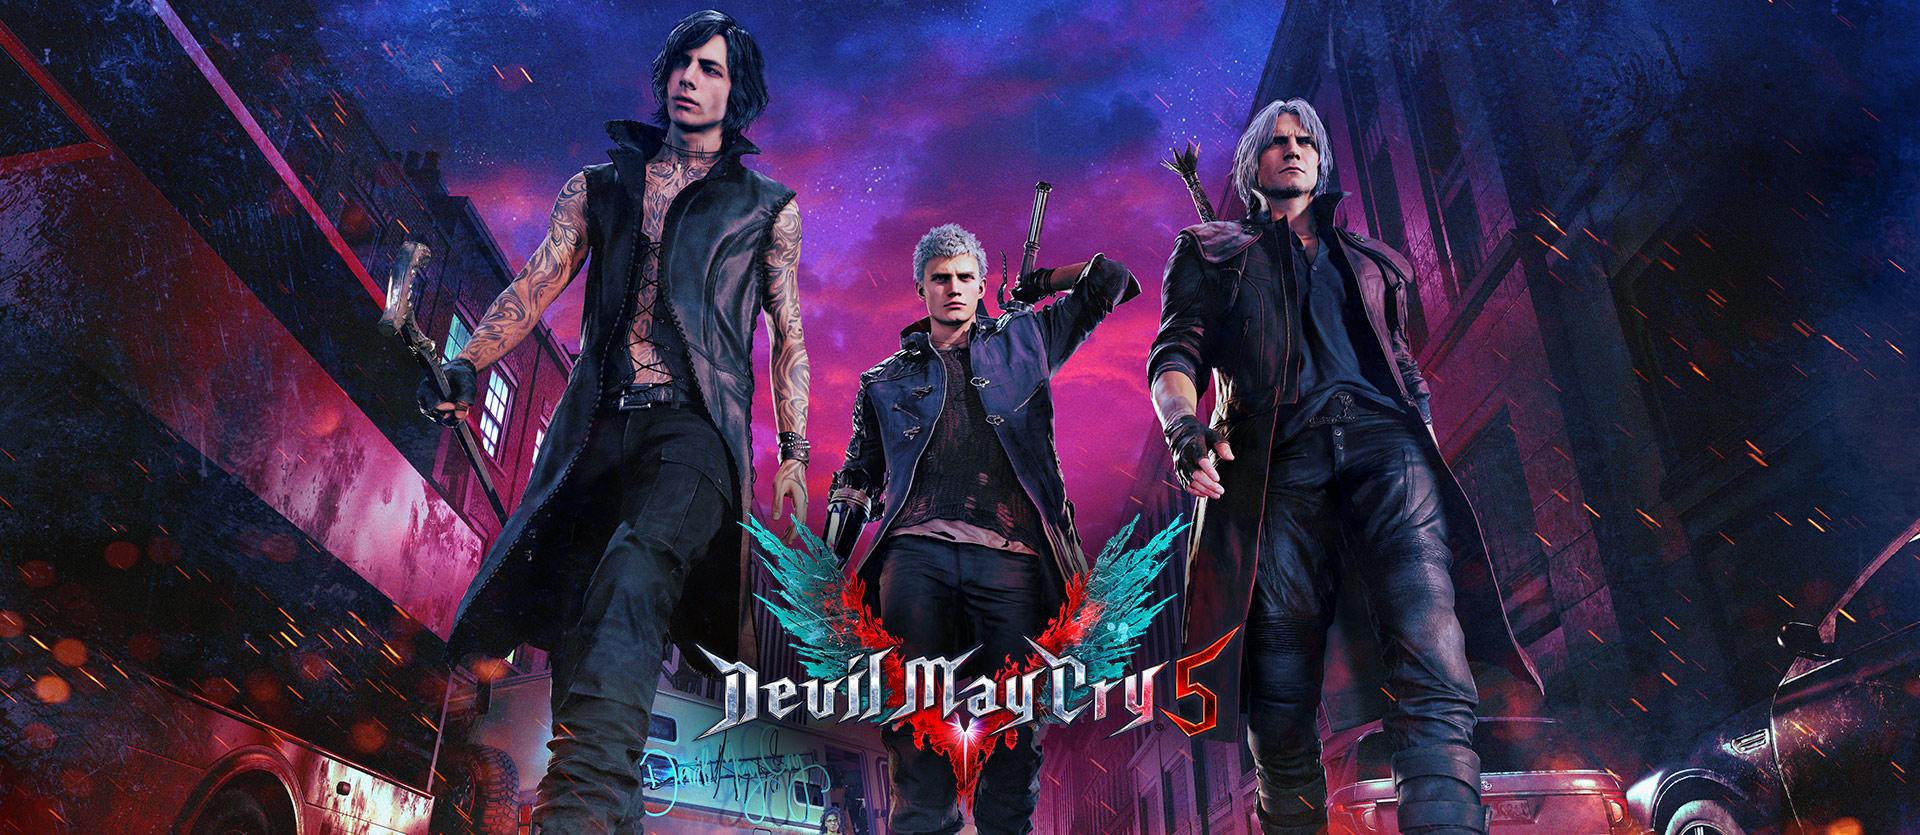 Devil May Cry 5, Front view of demon hunters Nero, Dante and V walking down a street